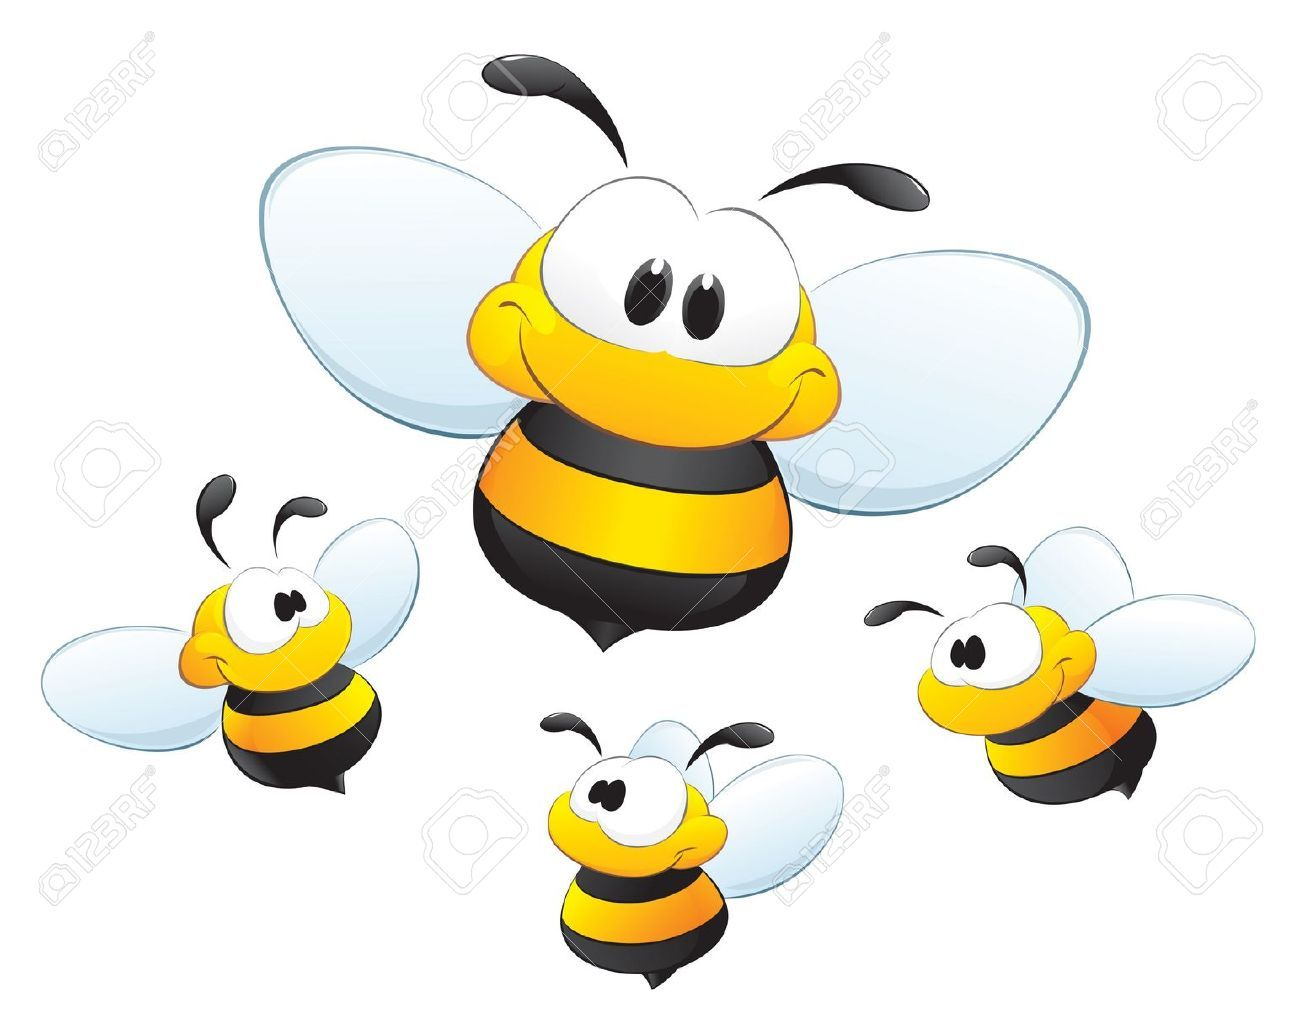 Image result for bee cartoon drawing